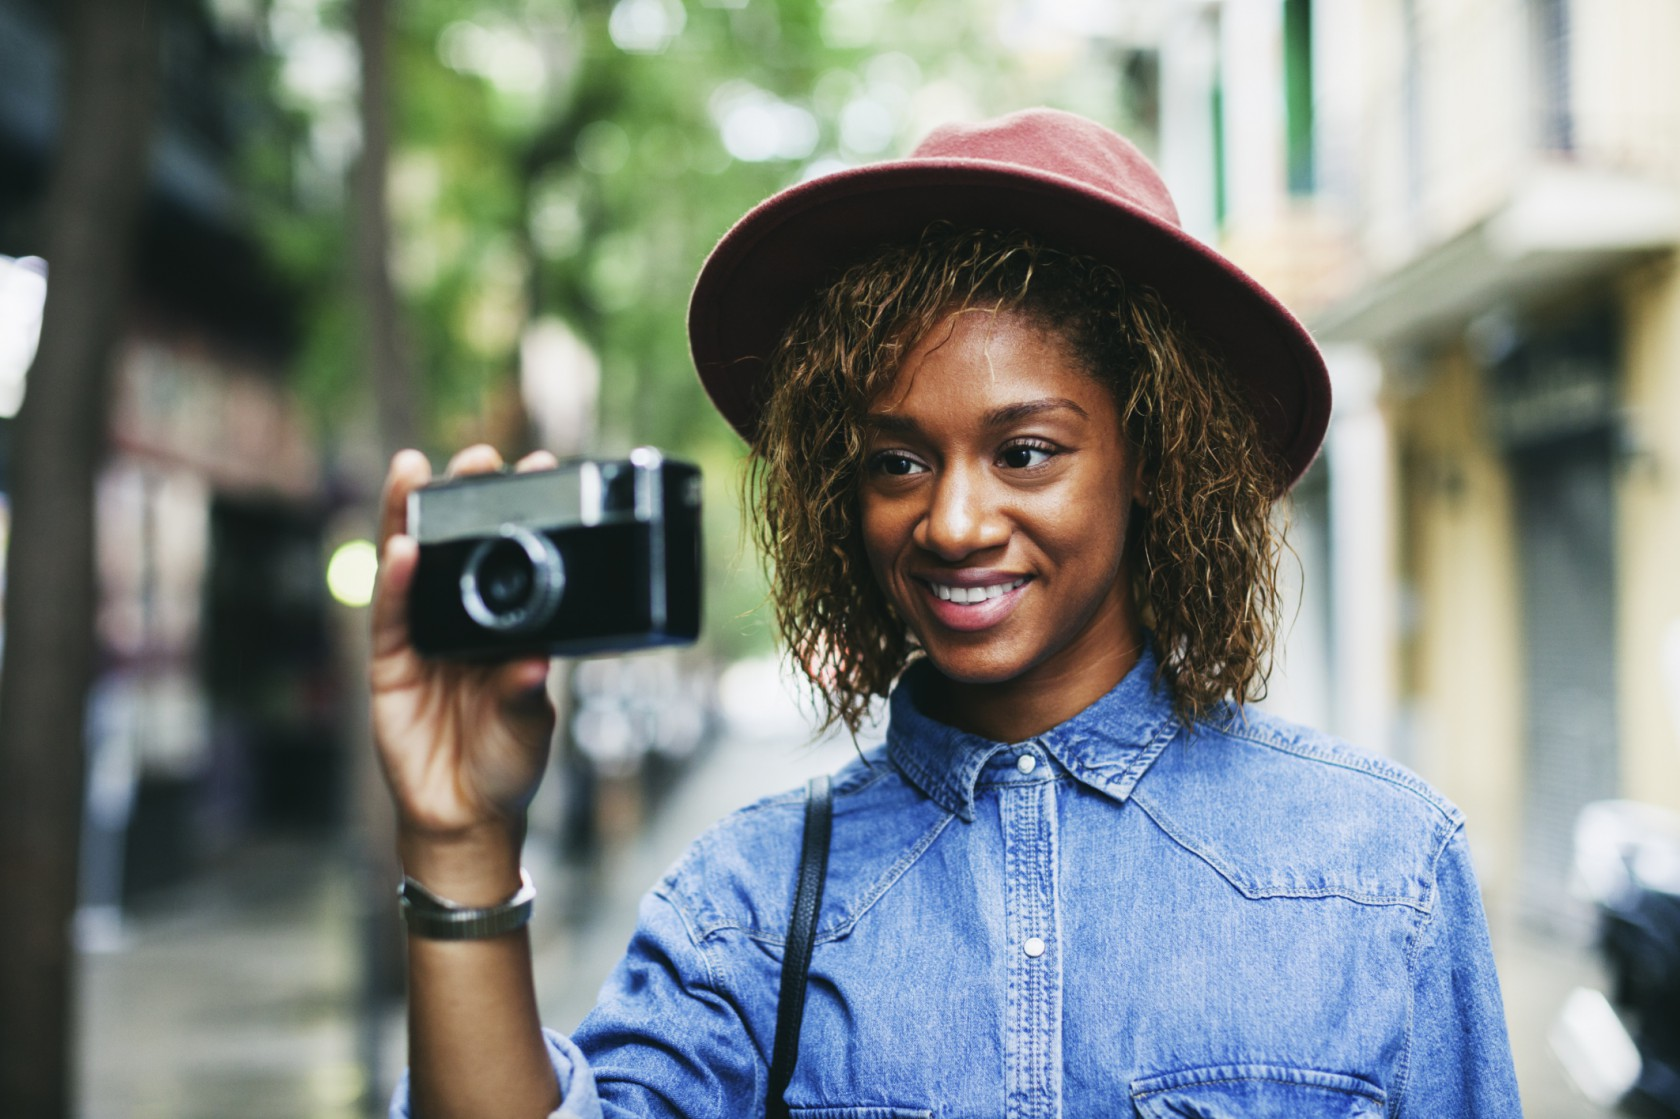 Portrait of smiling young woman wearing hat and denim shirt holding camera